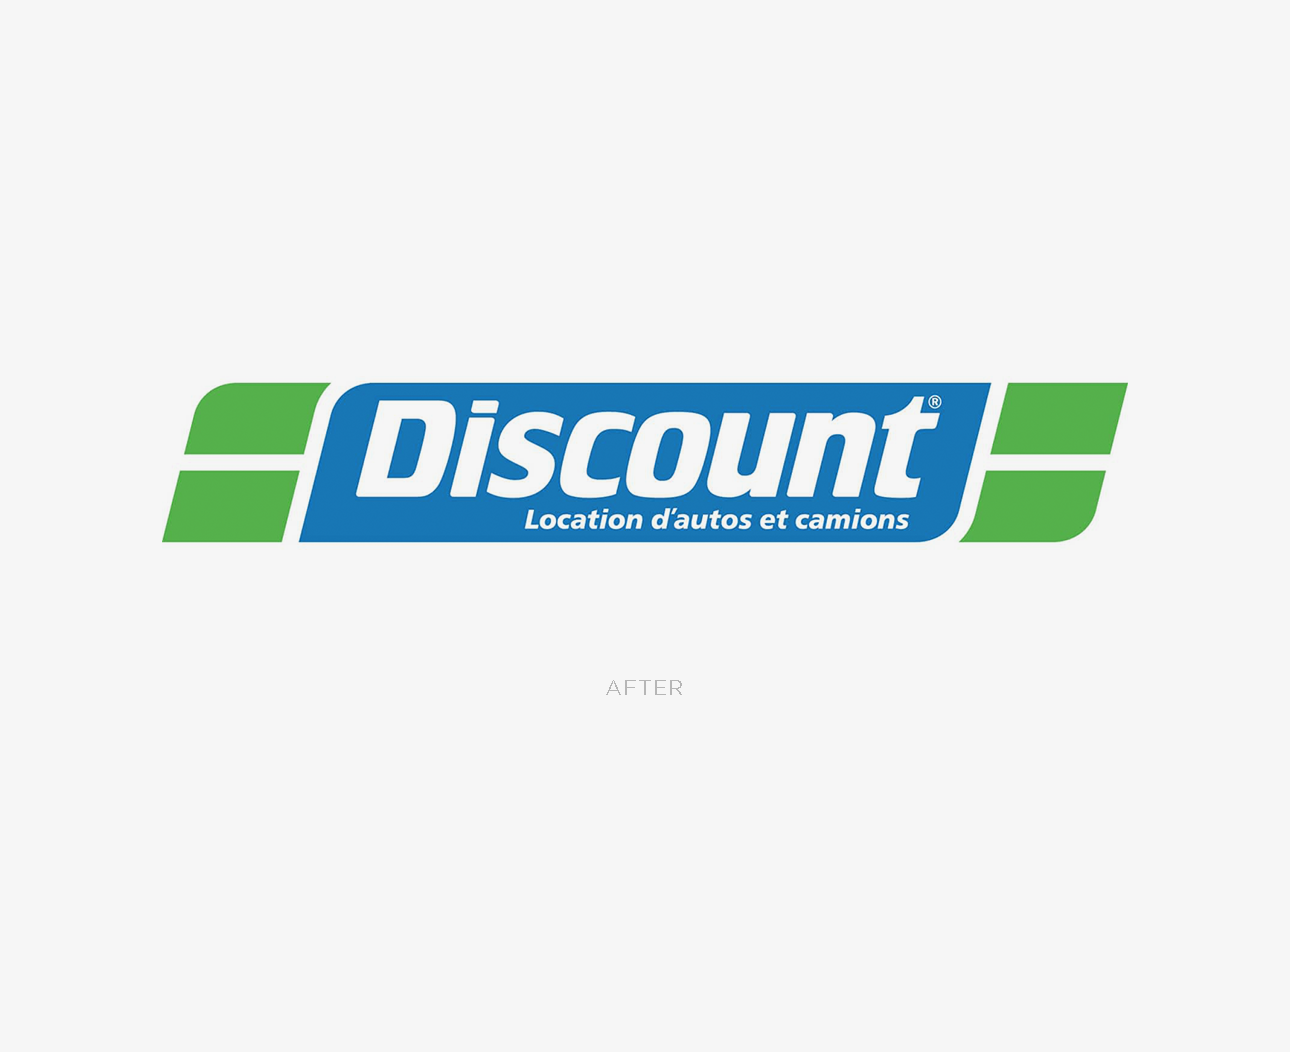 Discount brand image after